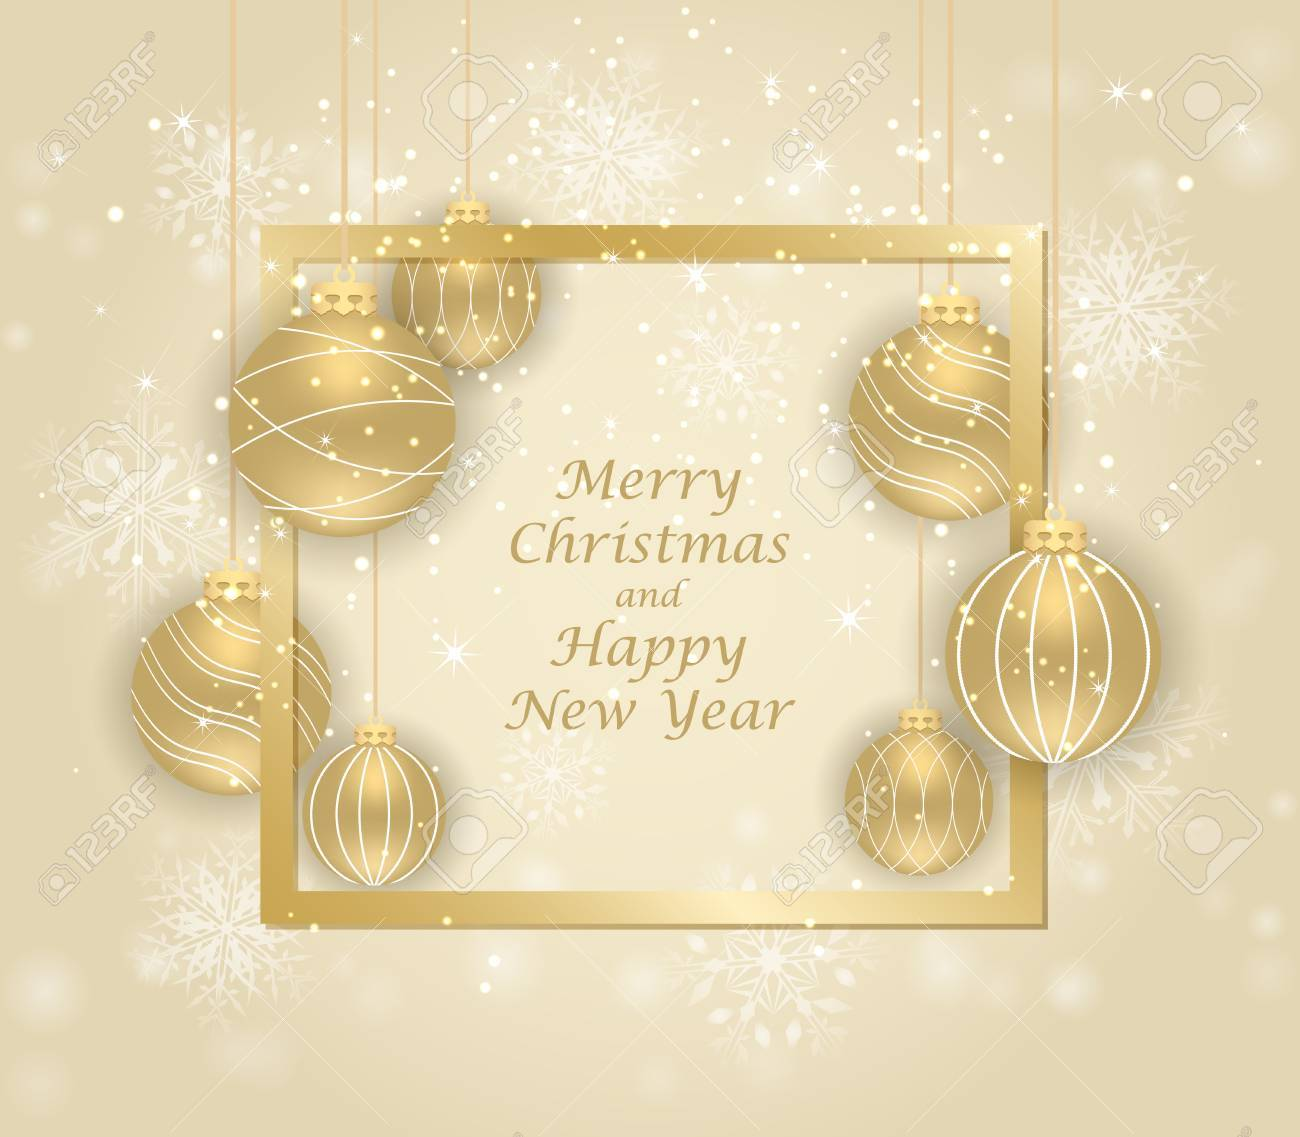 merry christmas and happy new year beautiful gift card with golden balls elegant golden